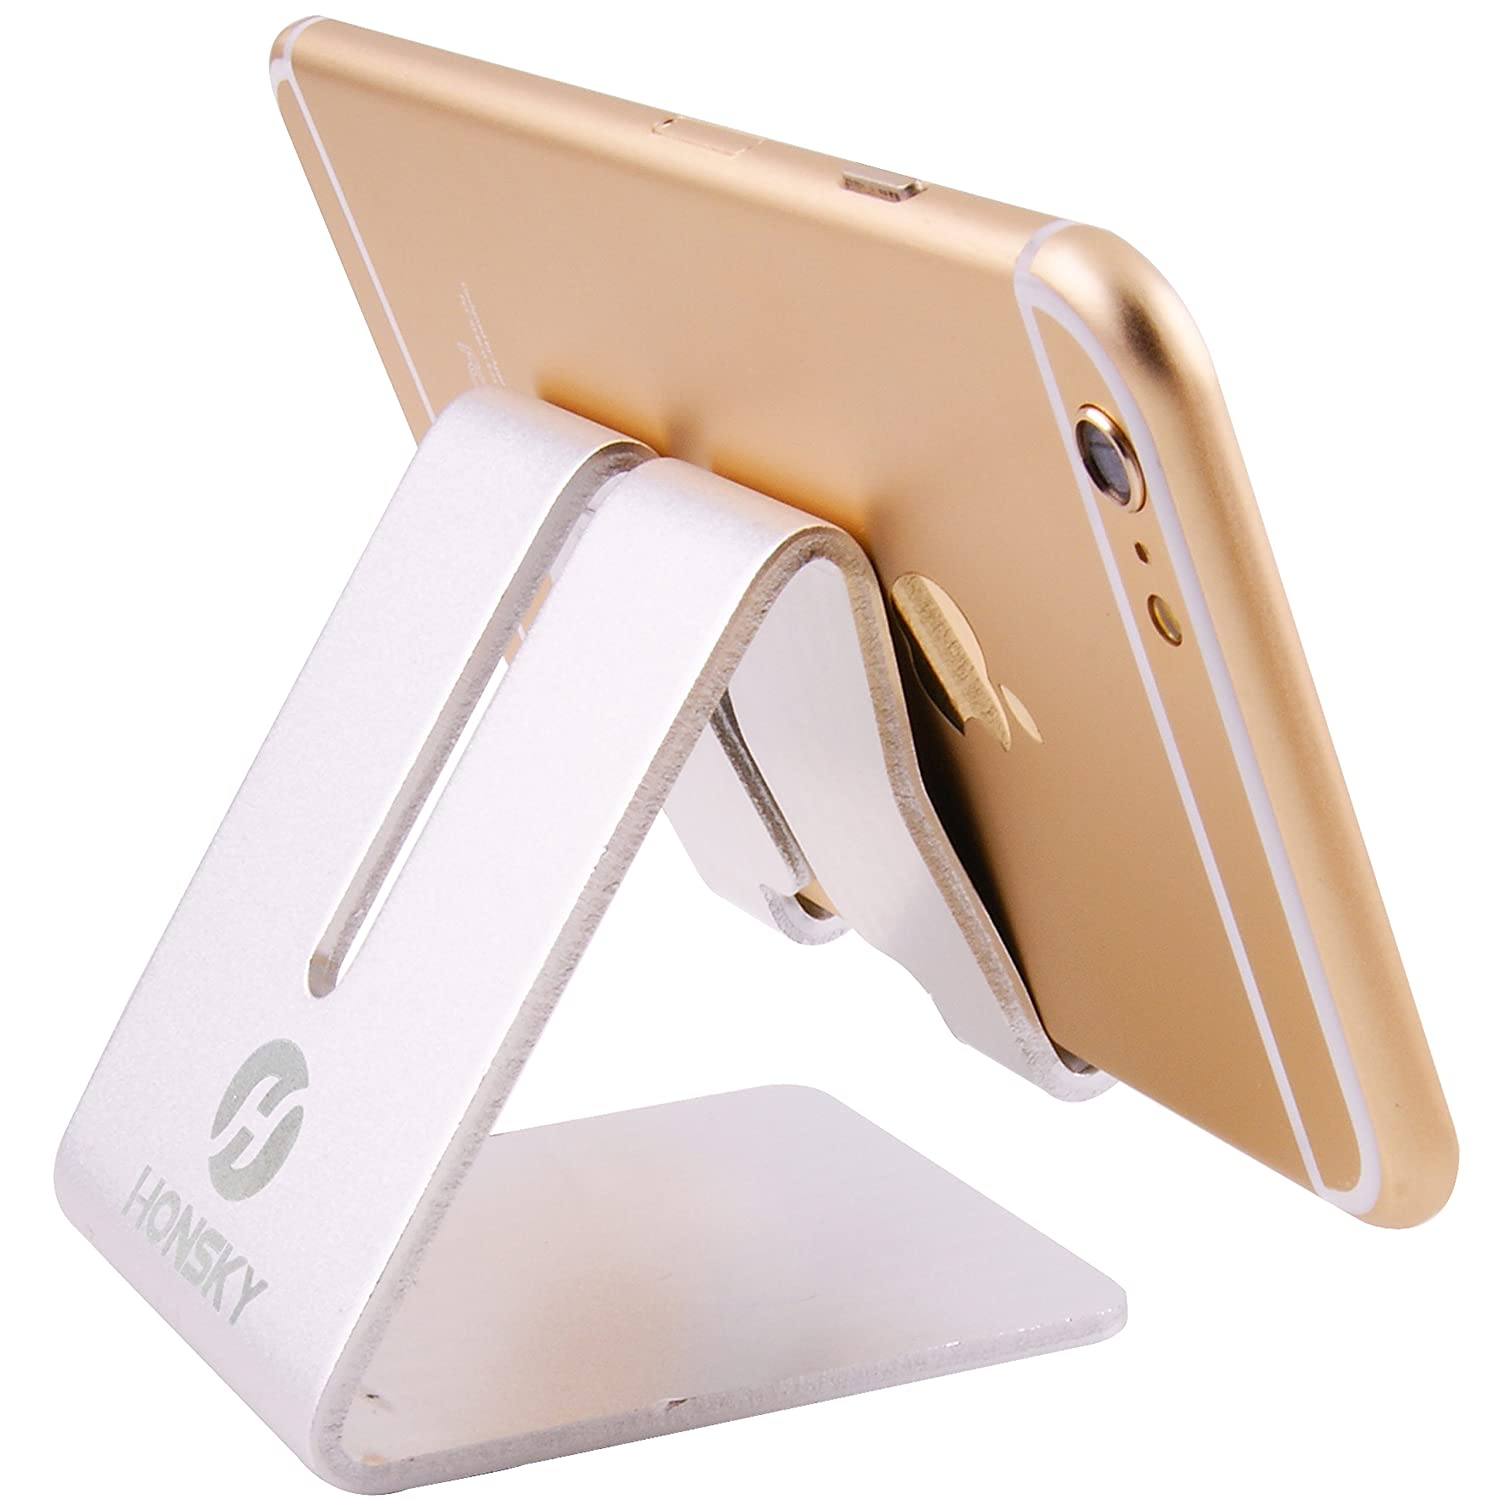 Mobile Phone Accessories Cellphones & Telecommunications Universal Golden Electronics Smart Device Aluminum Alloy Mobile Phone Desk Stand Holder Mount Bracket For Iphone Various Styles